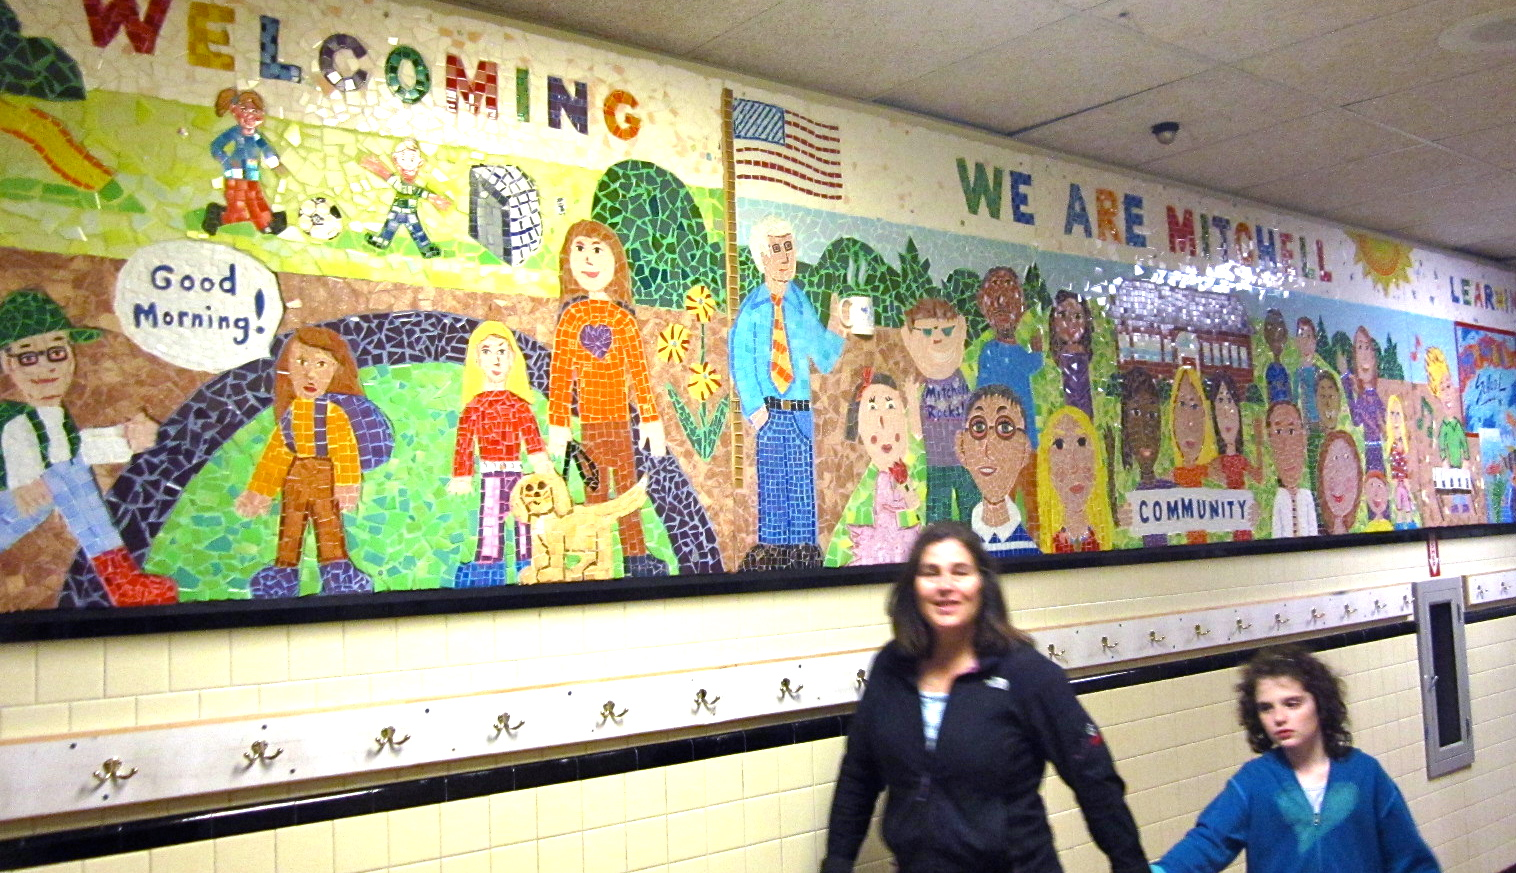 Here's our finished mosaic, on the wall in front of the cafeteria.